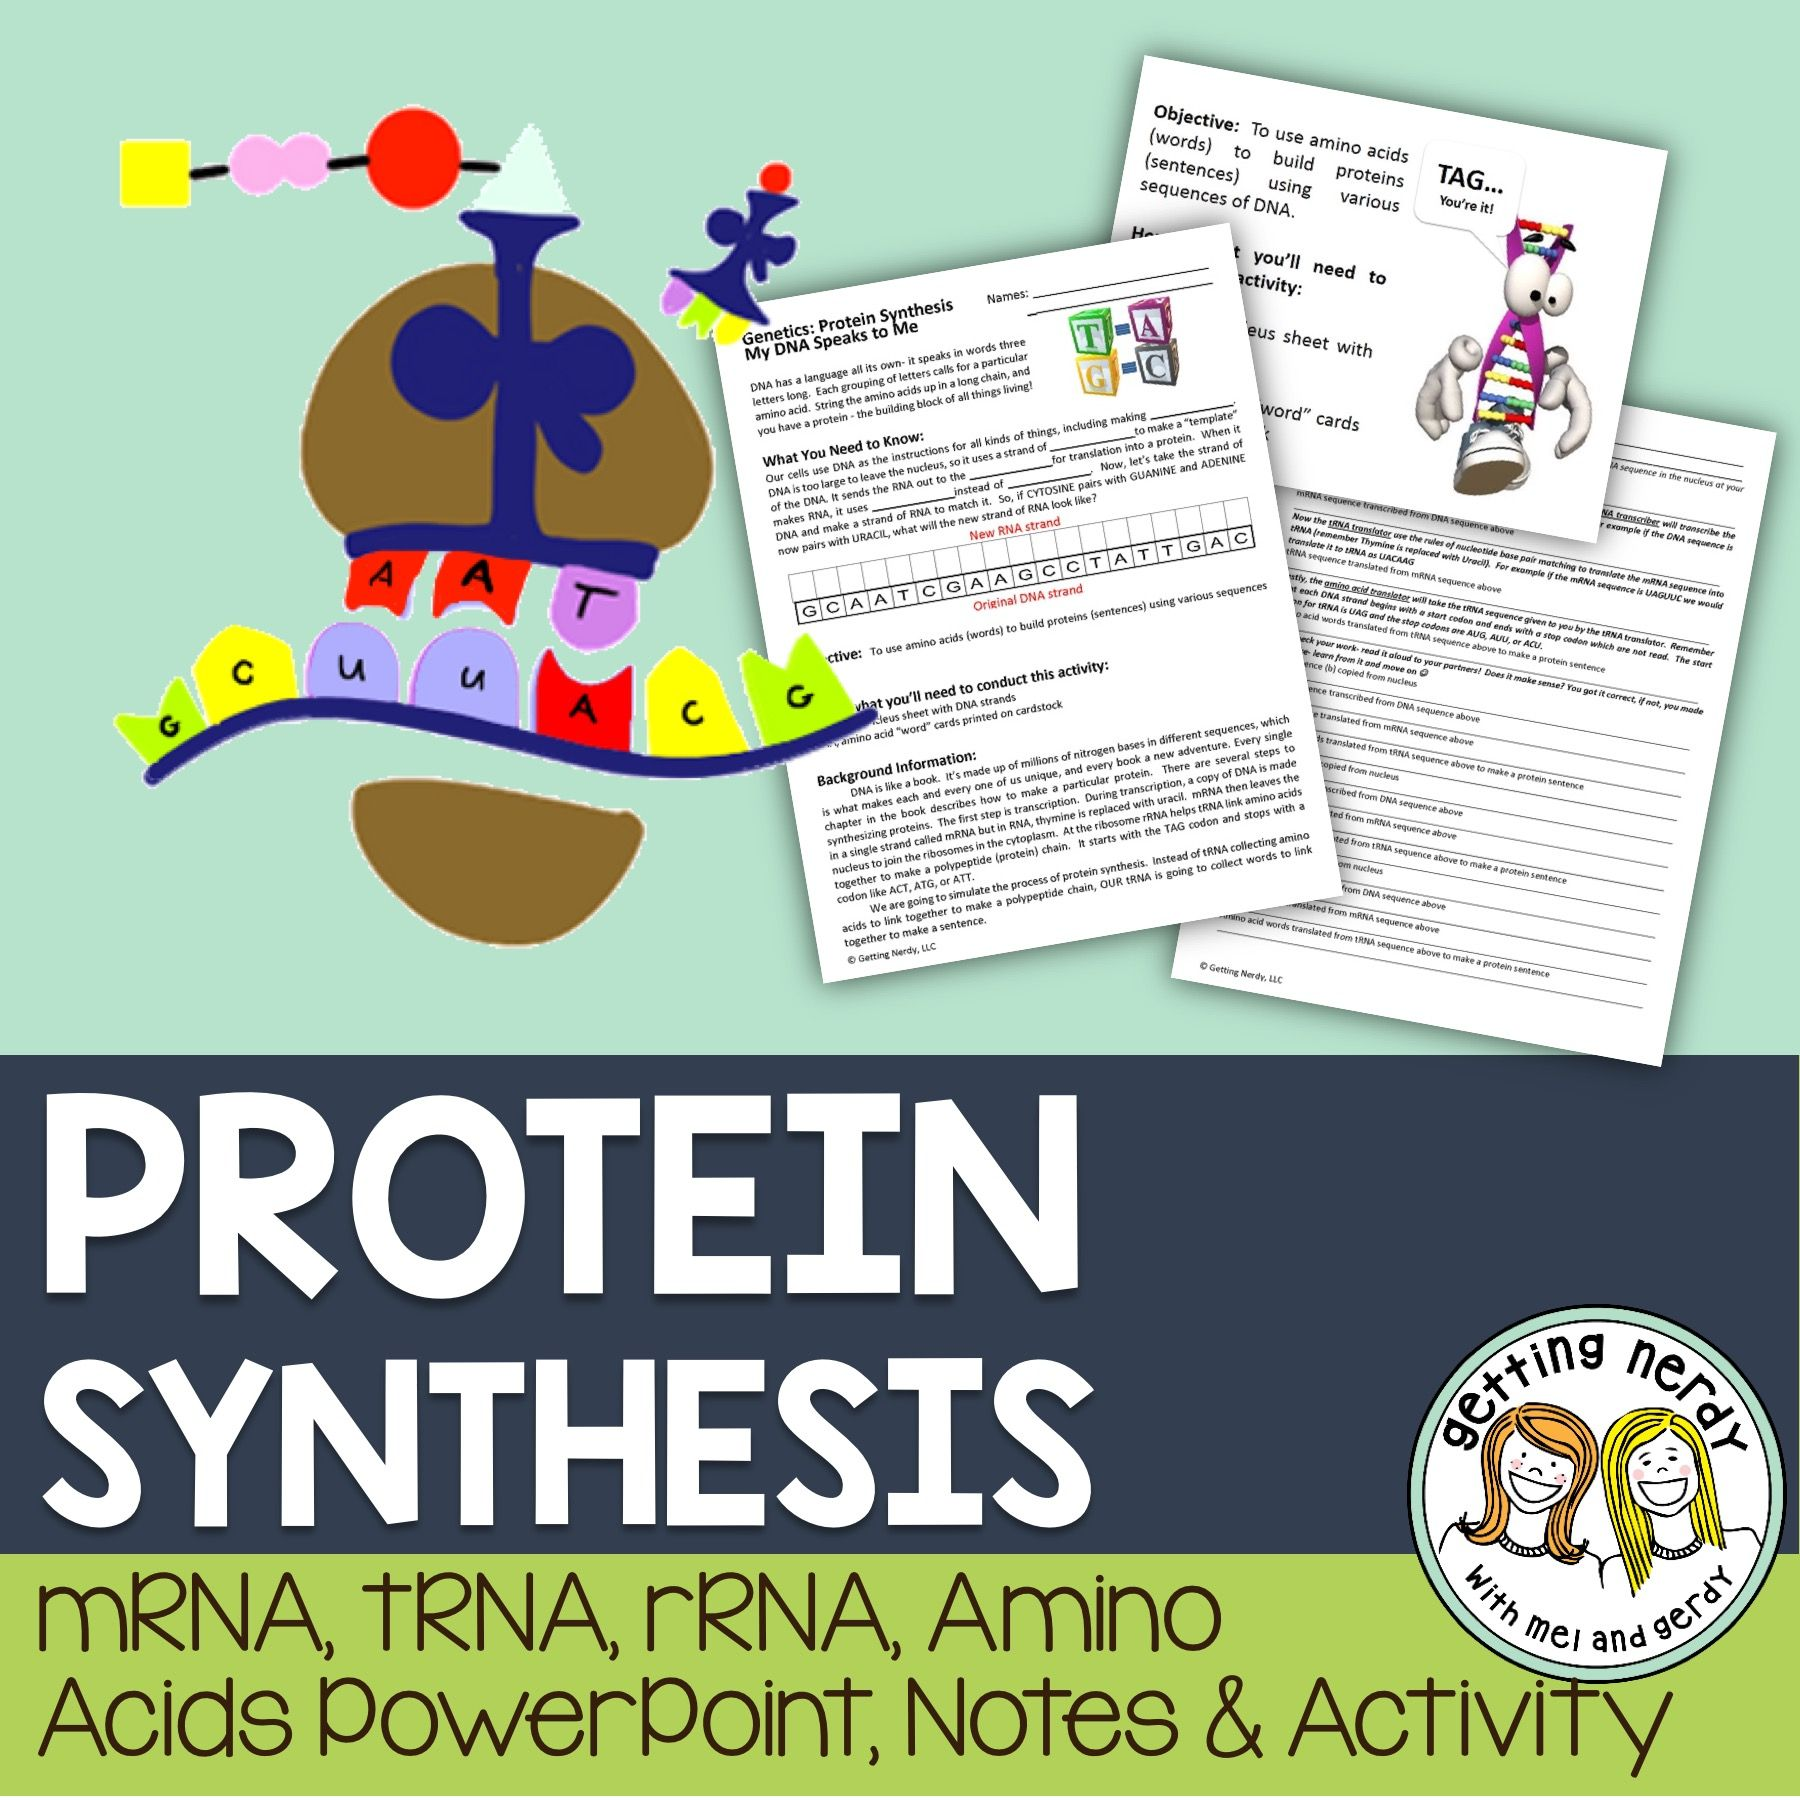 Protein synthesis mrna dna rrna powerpoint and handouts protein synthesis mrna dna rrna powerpoint and handouts malvernweather Choice Image